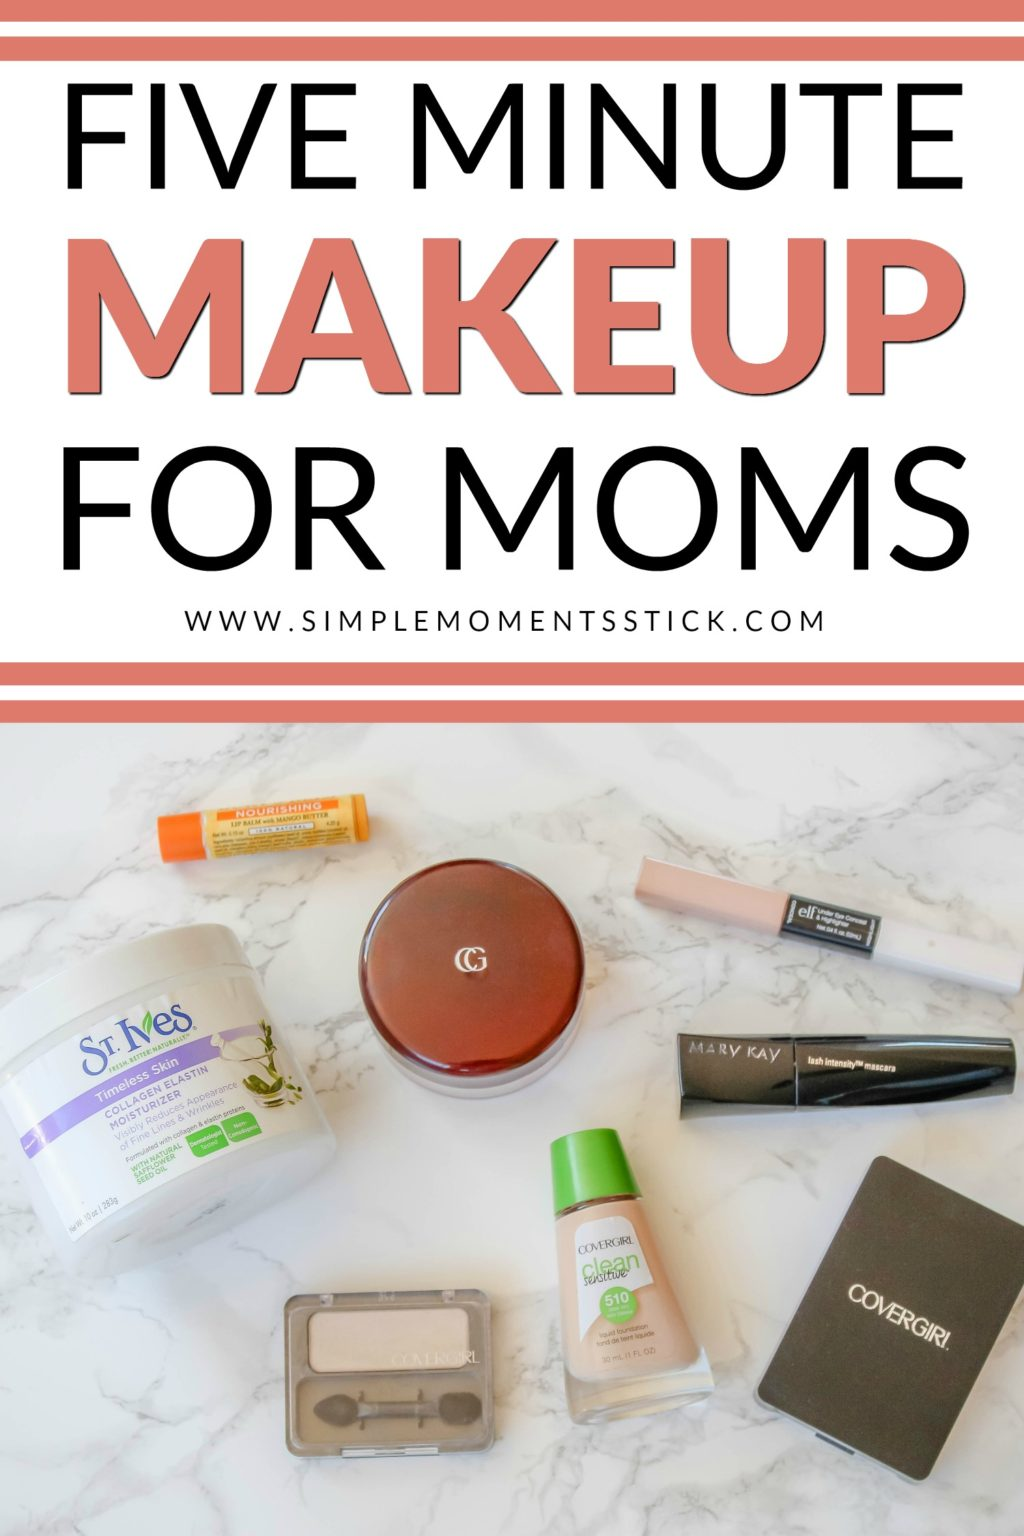 Check out this fantastic quick makeup for everyday. Every mom needs a five minute makeup